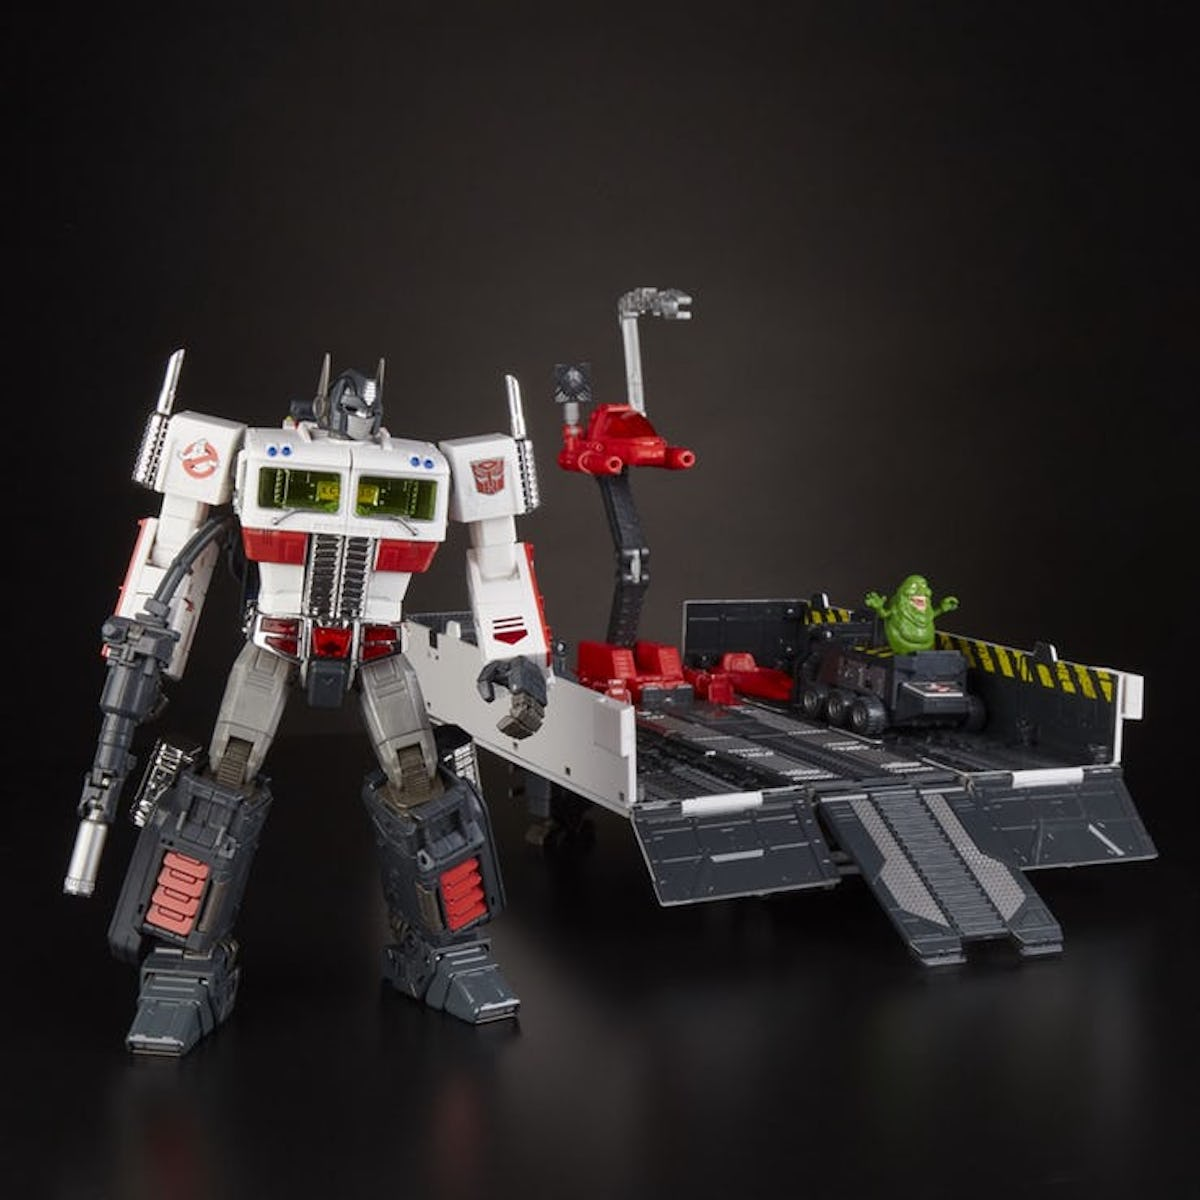 Ghostbusters x Transformers 3